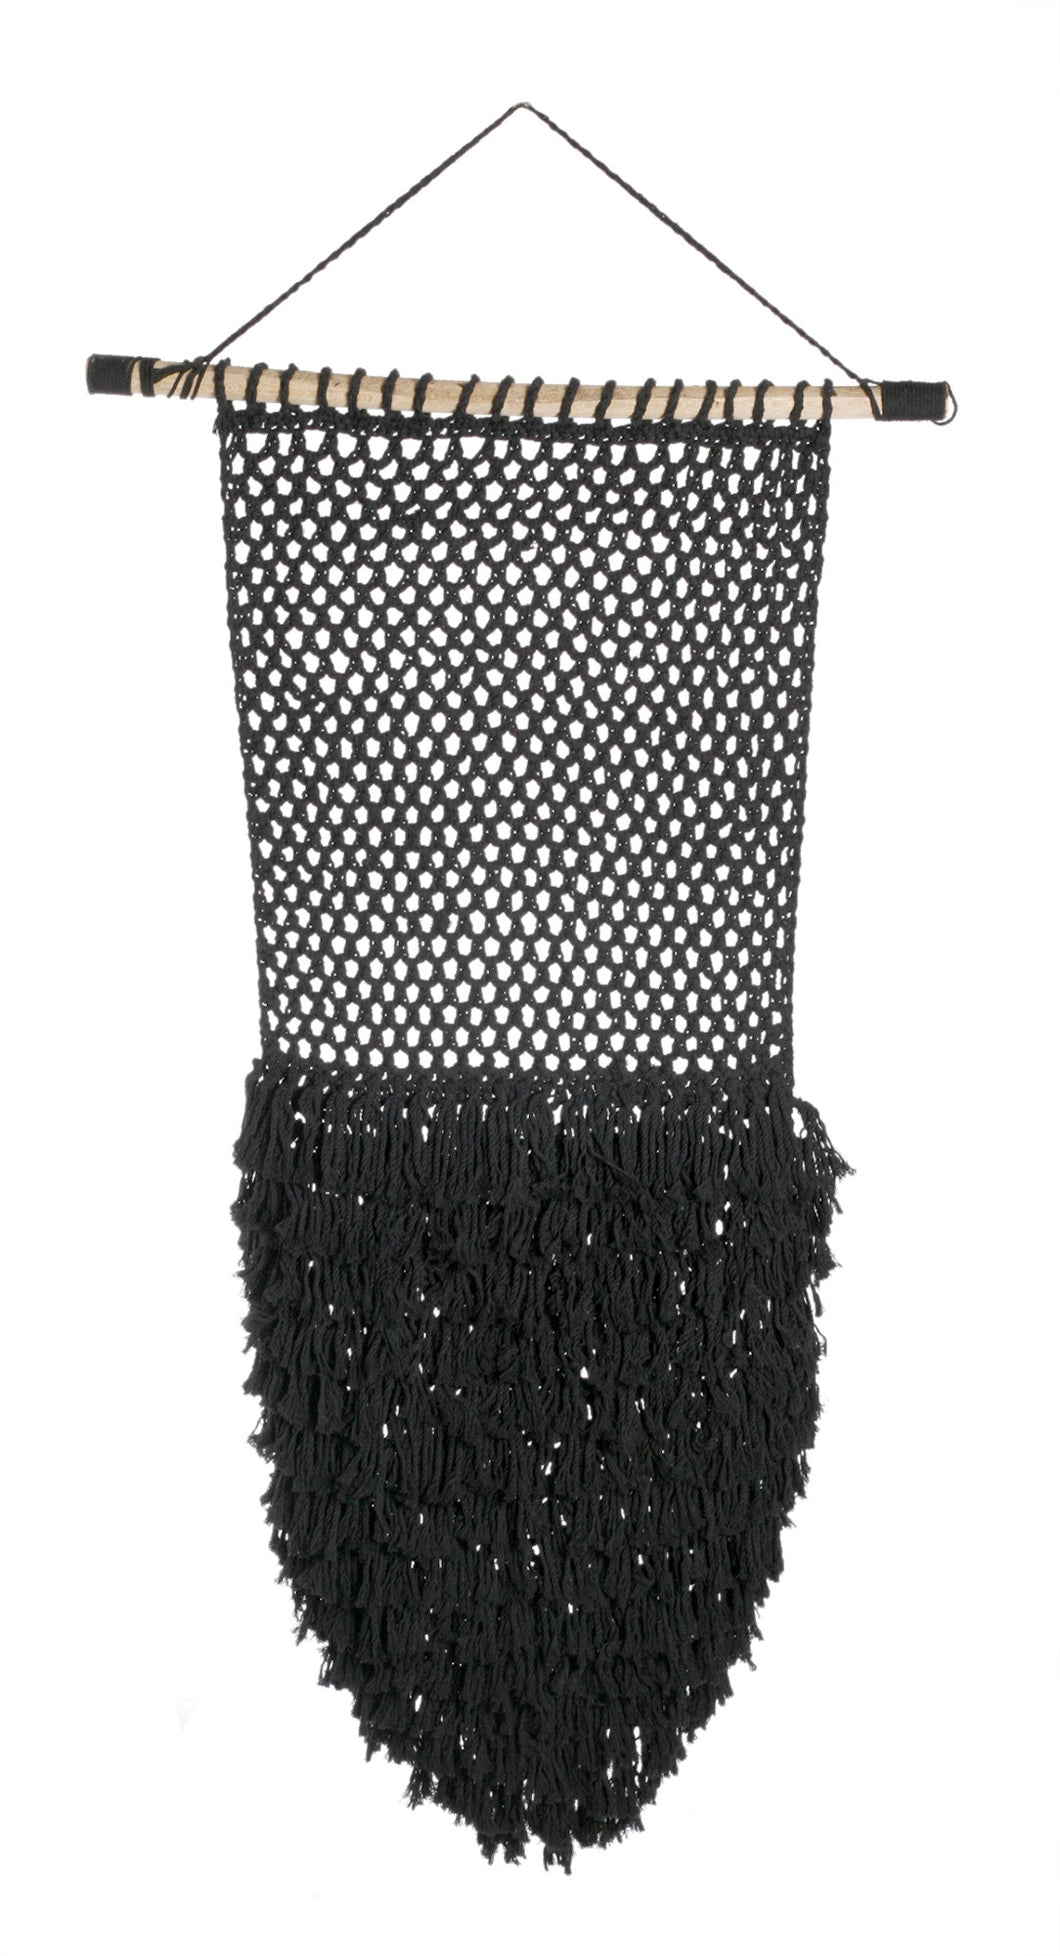 Large Black Shag Macrame